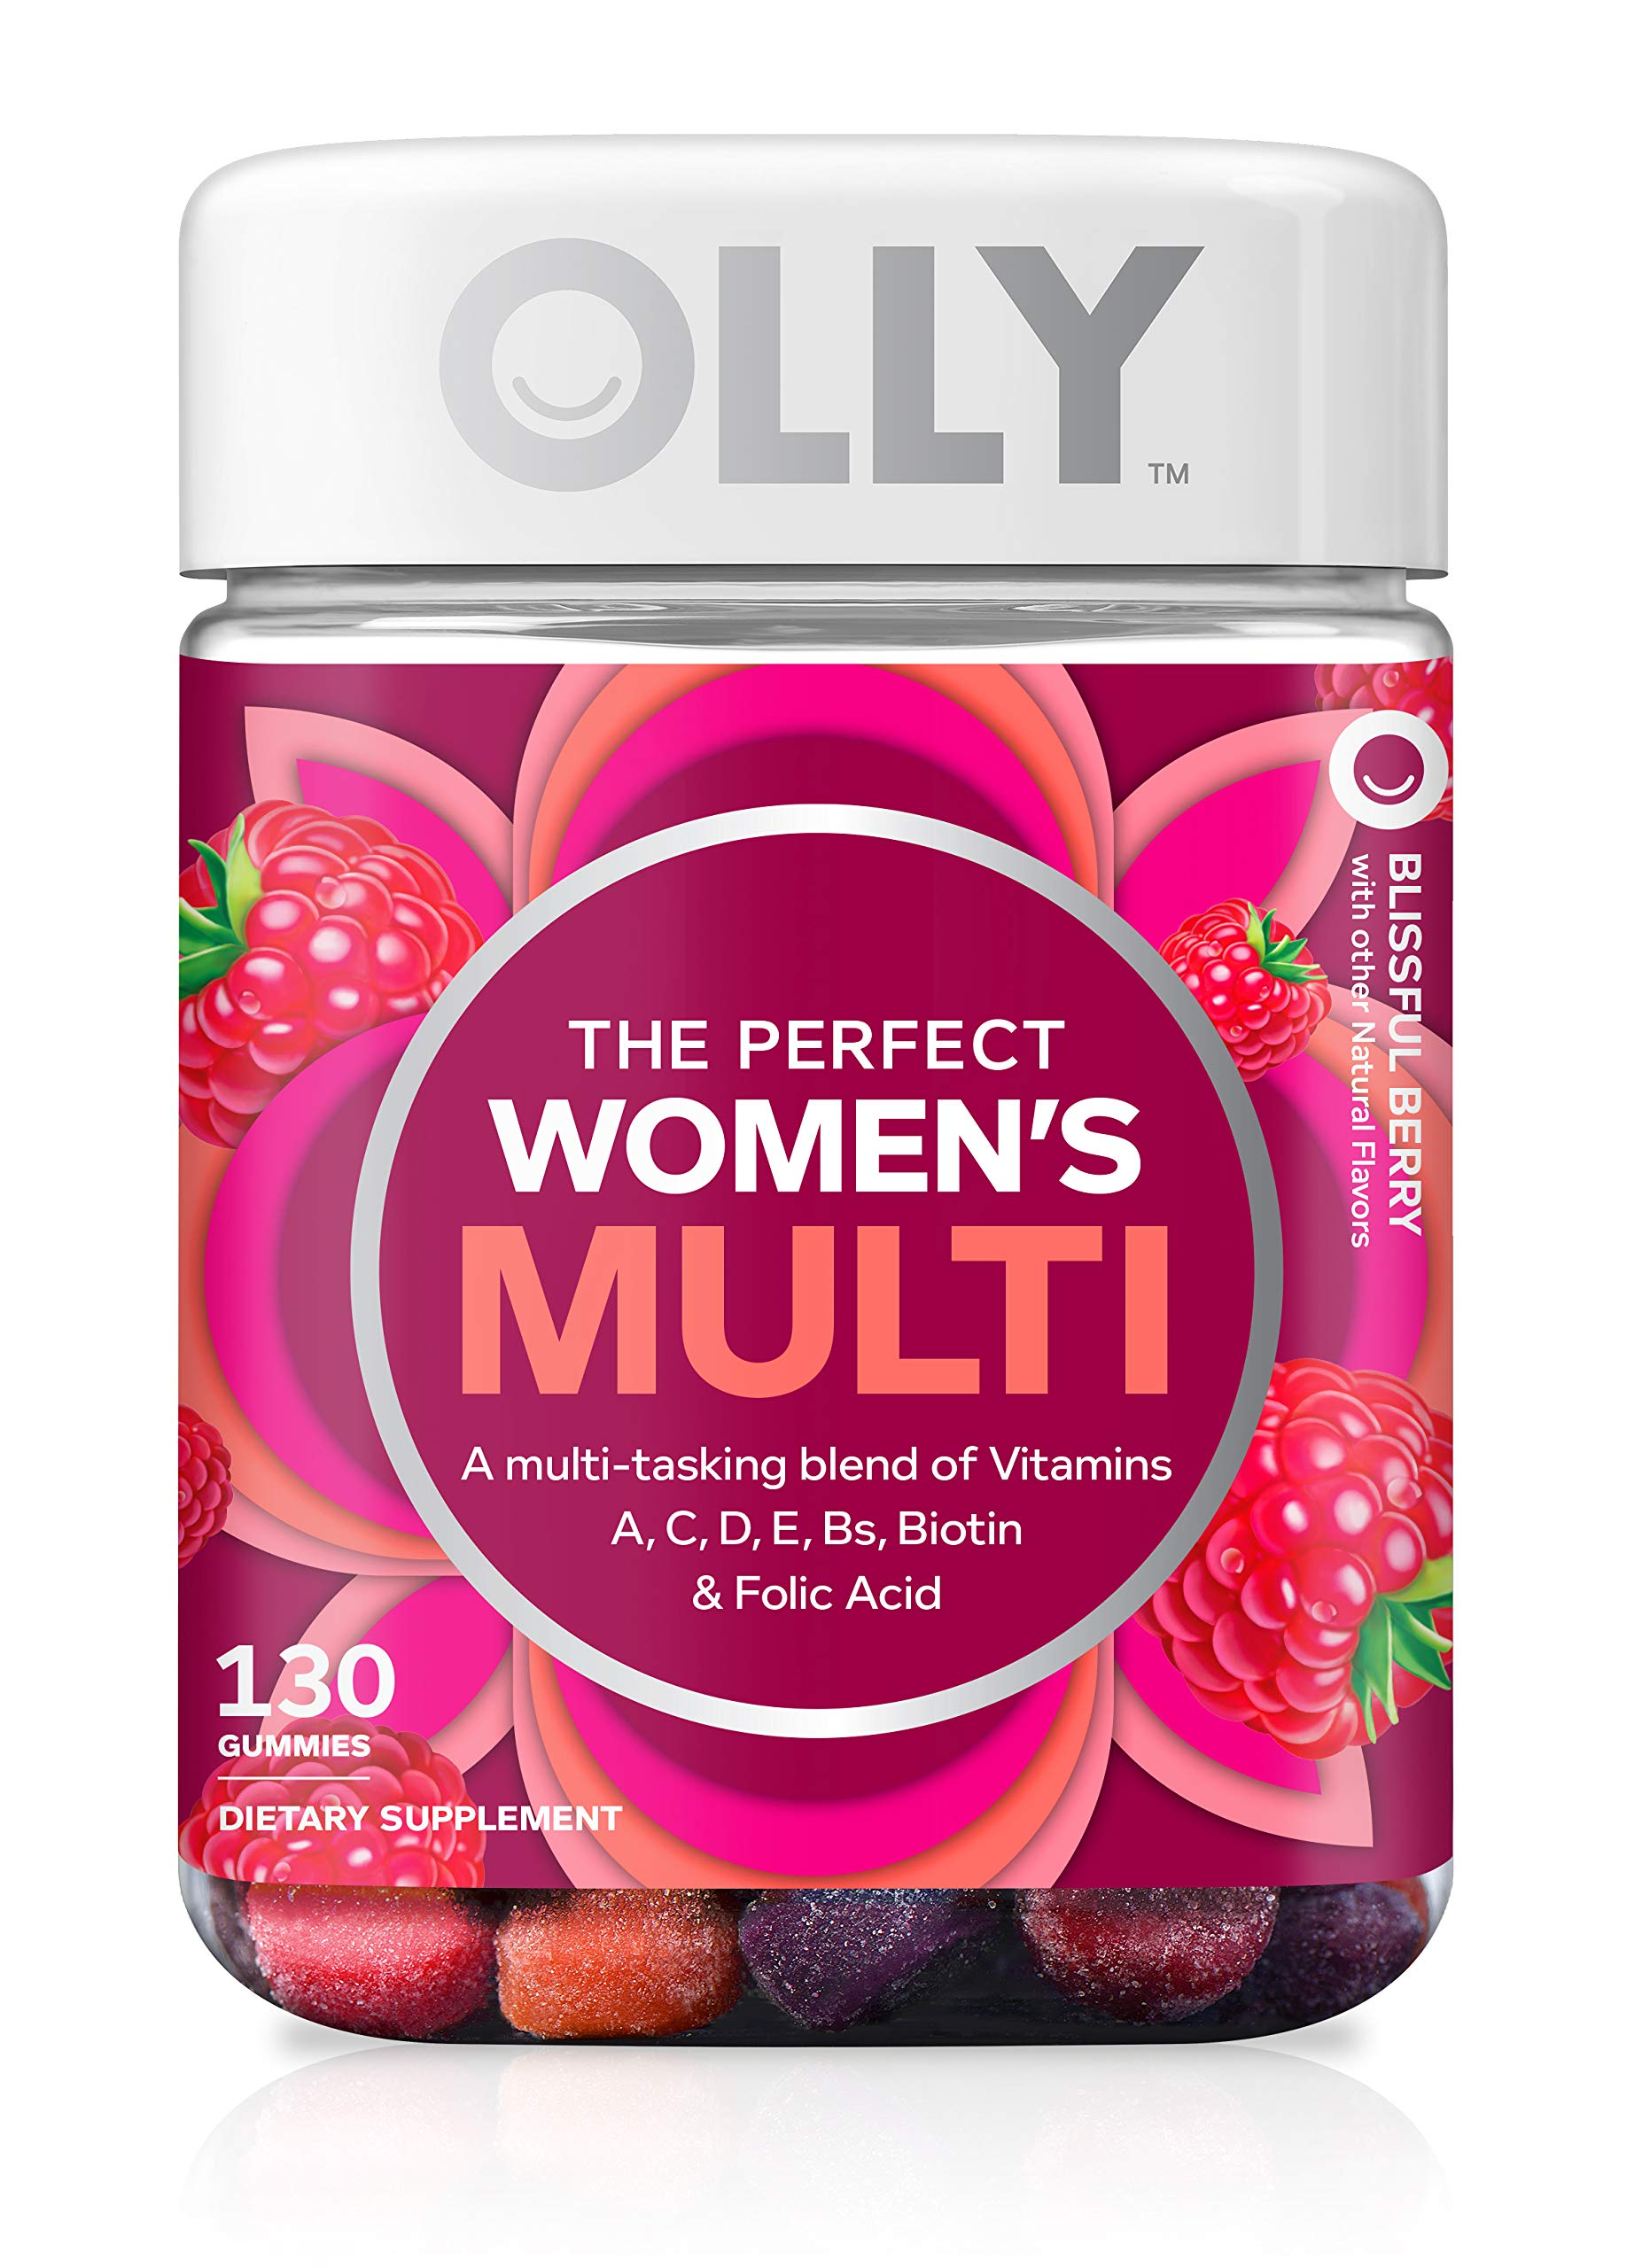 OLLY The Perfect Womens Gummy Multivitamin, 65 Day Supply (130 Gummies), Blissful Berry, Vitamins A, D, C, E, Biotin, Folic Acid, Chewable Supplement